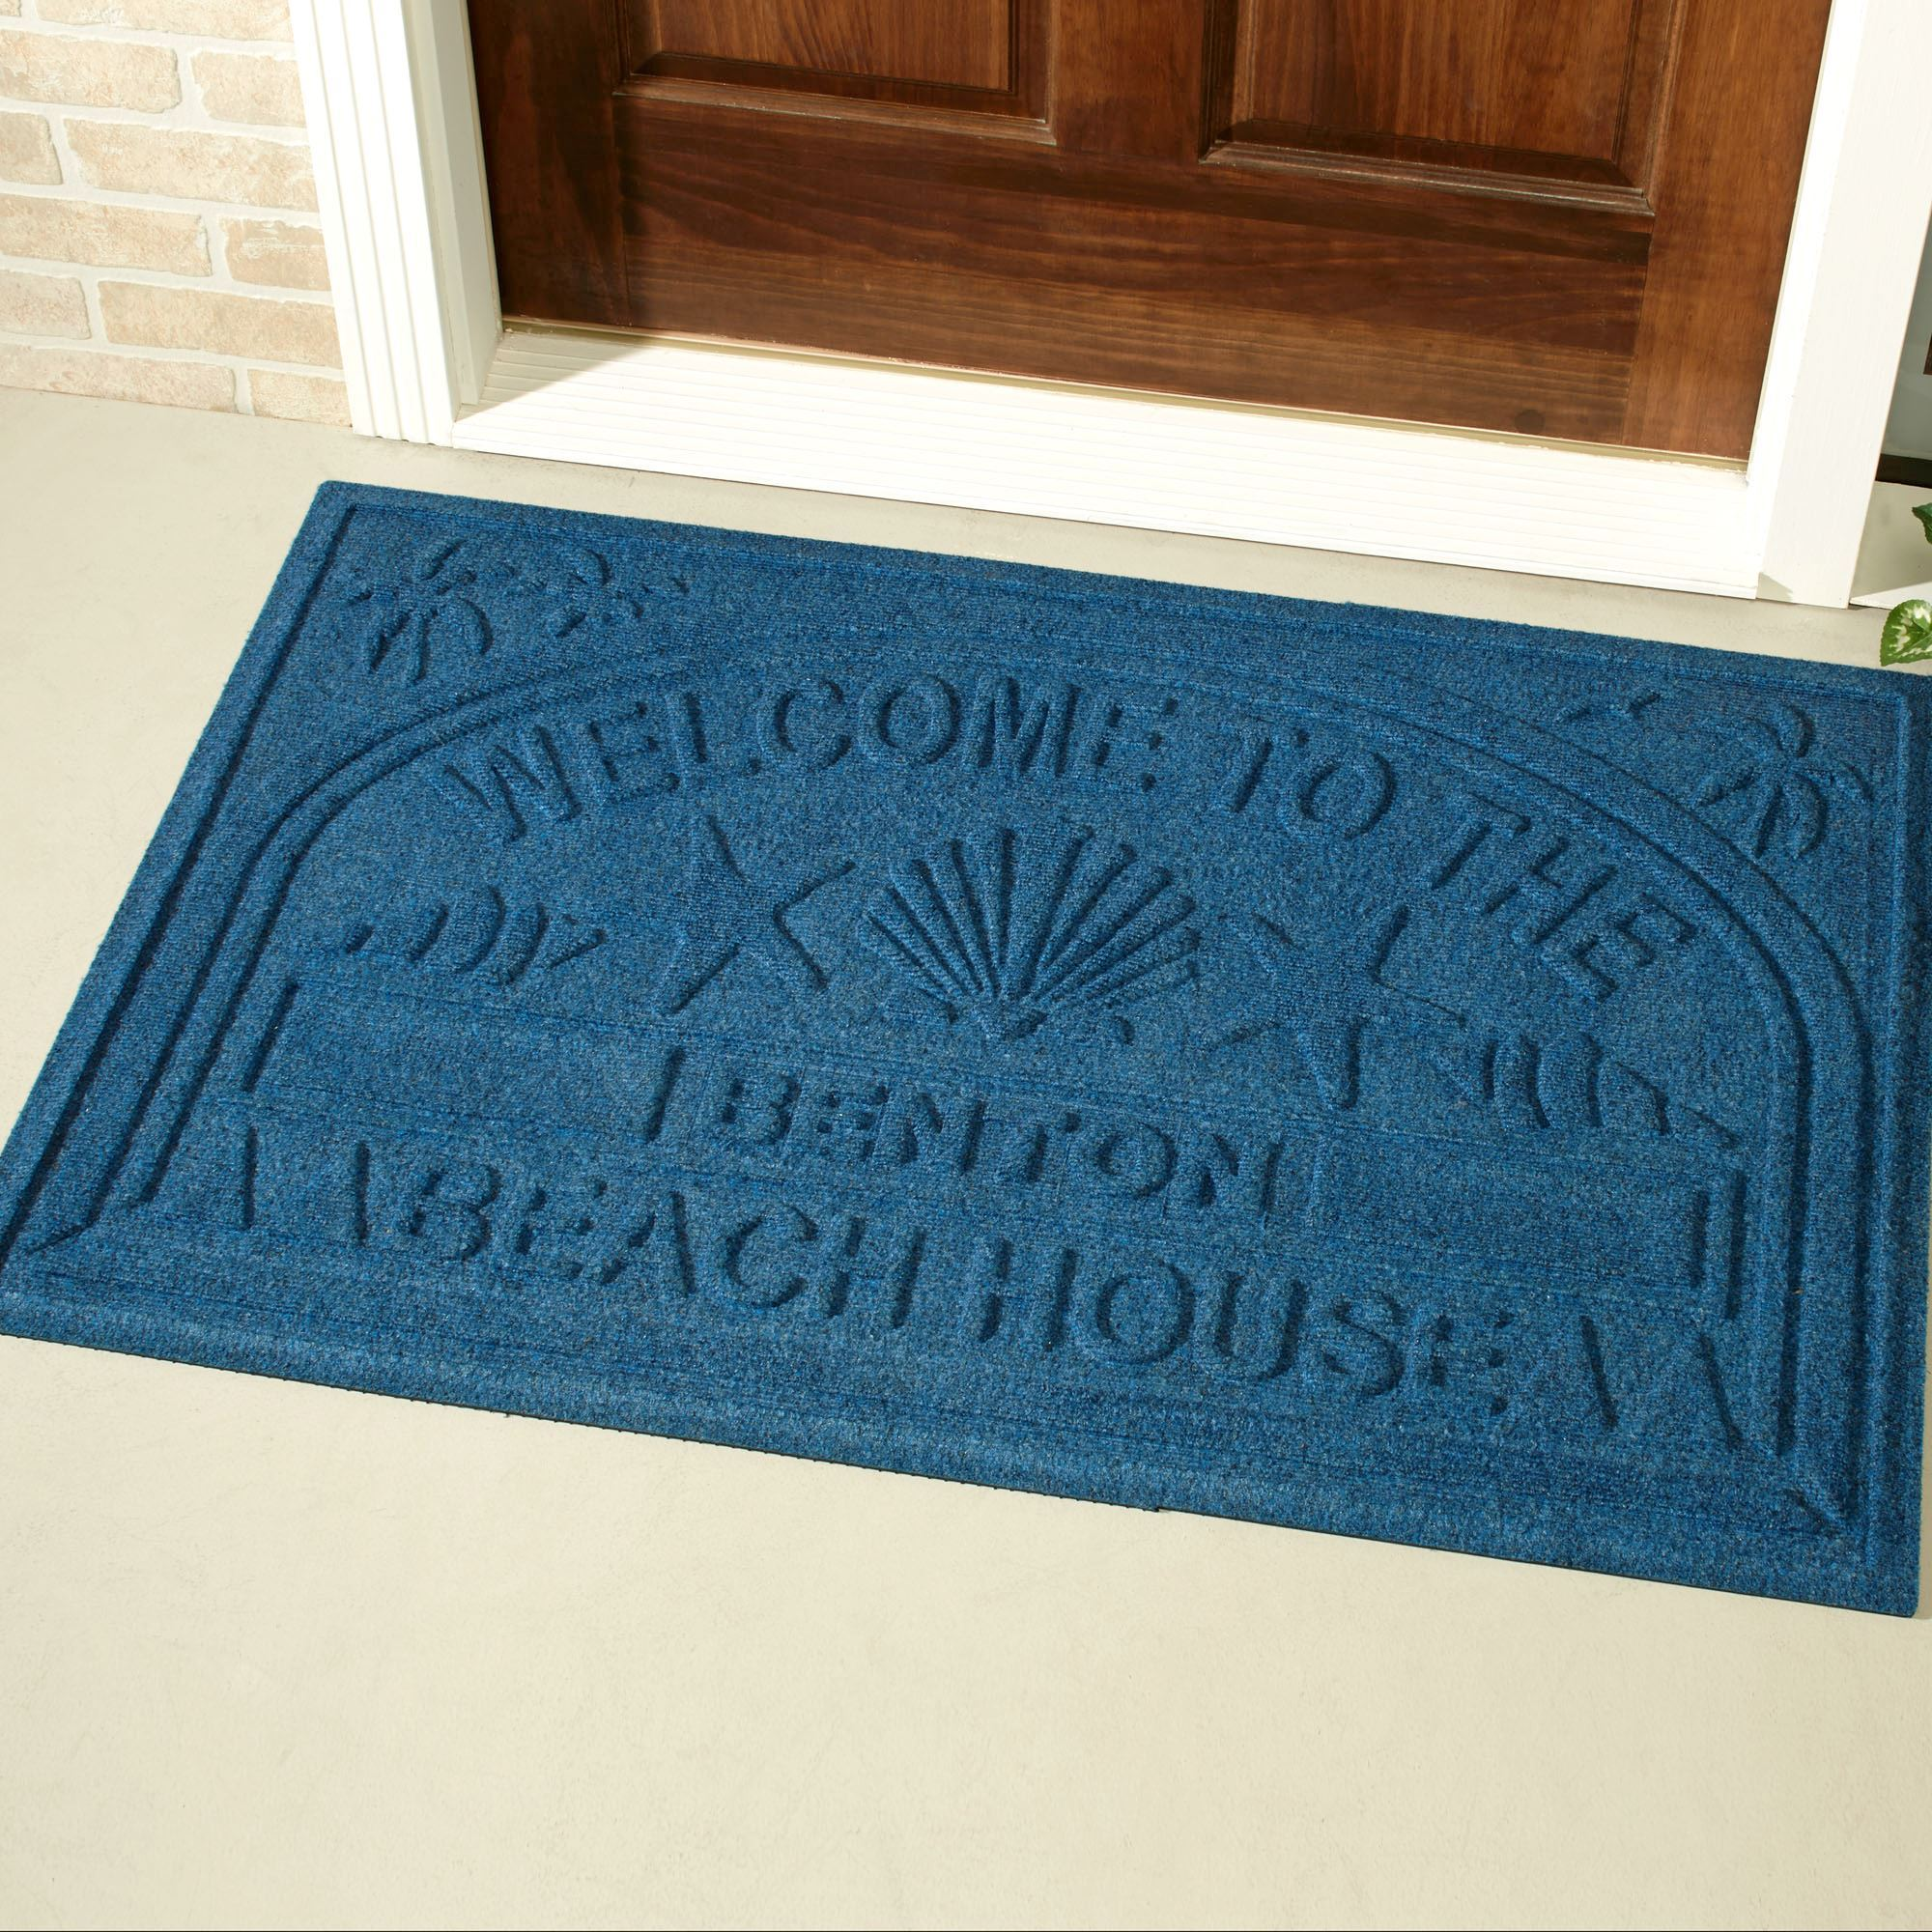 Welcome Beach Oversized Personalized Doormat